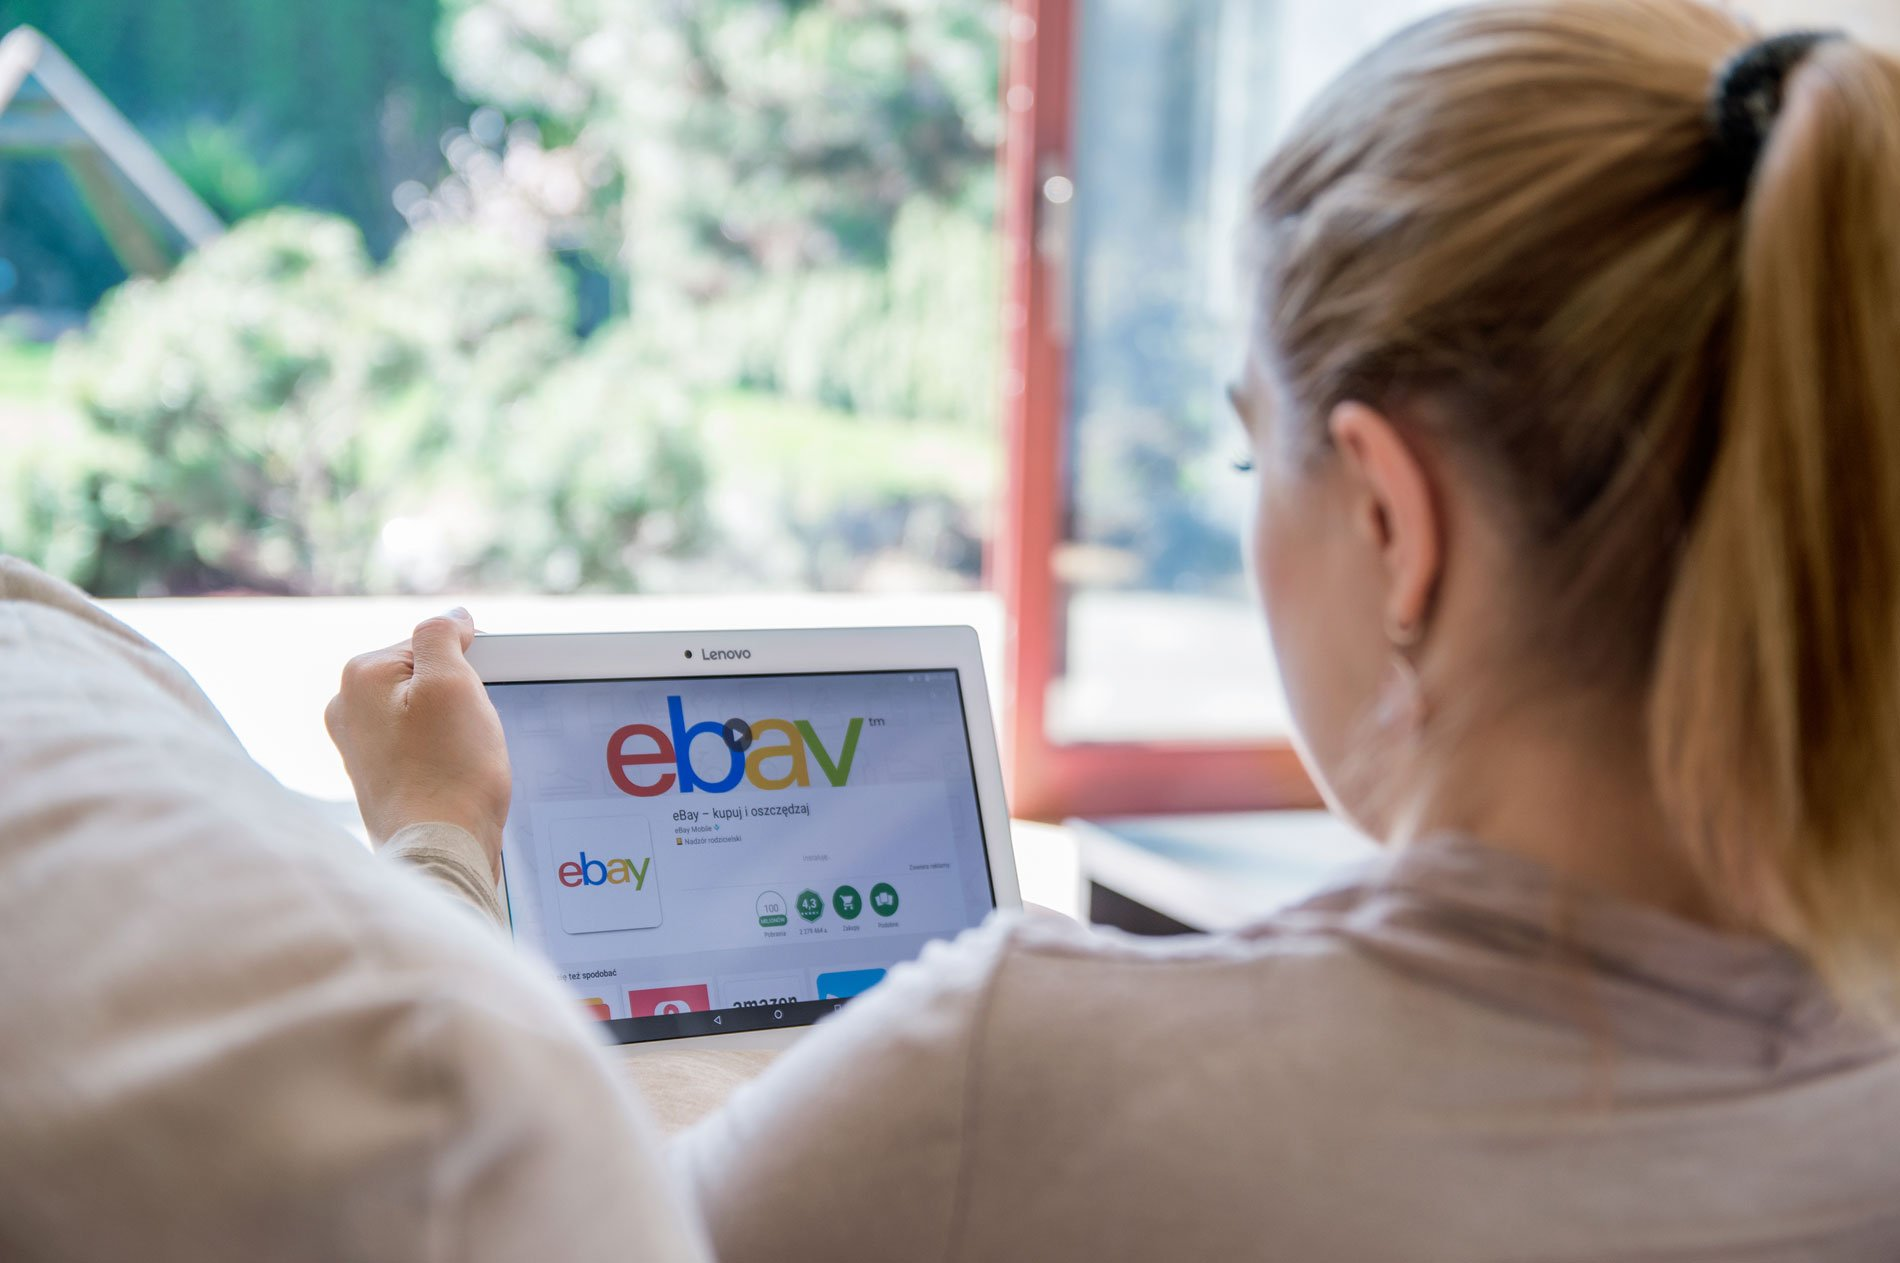 How To Use An Ebay Gift Card For Purchases On The Site Article Pulse Nigeria